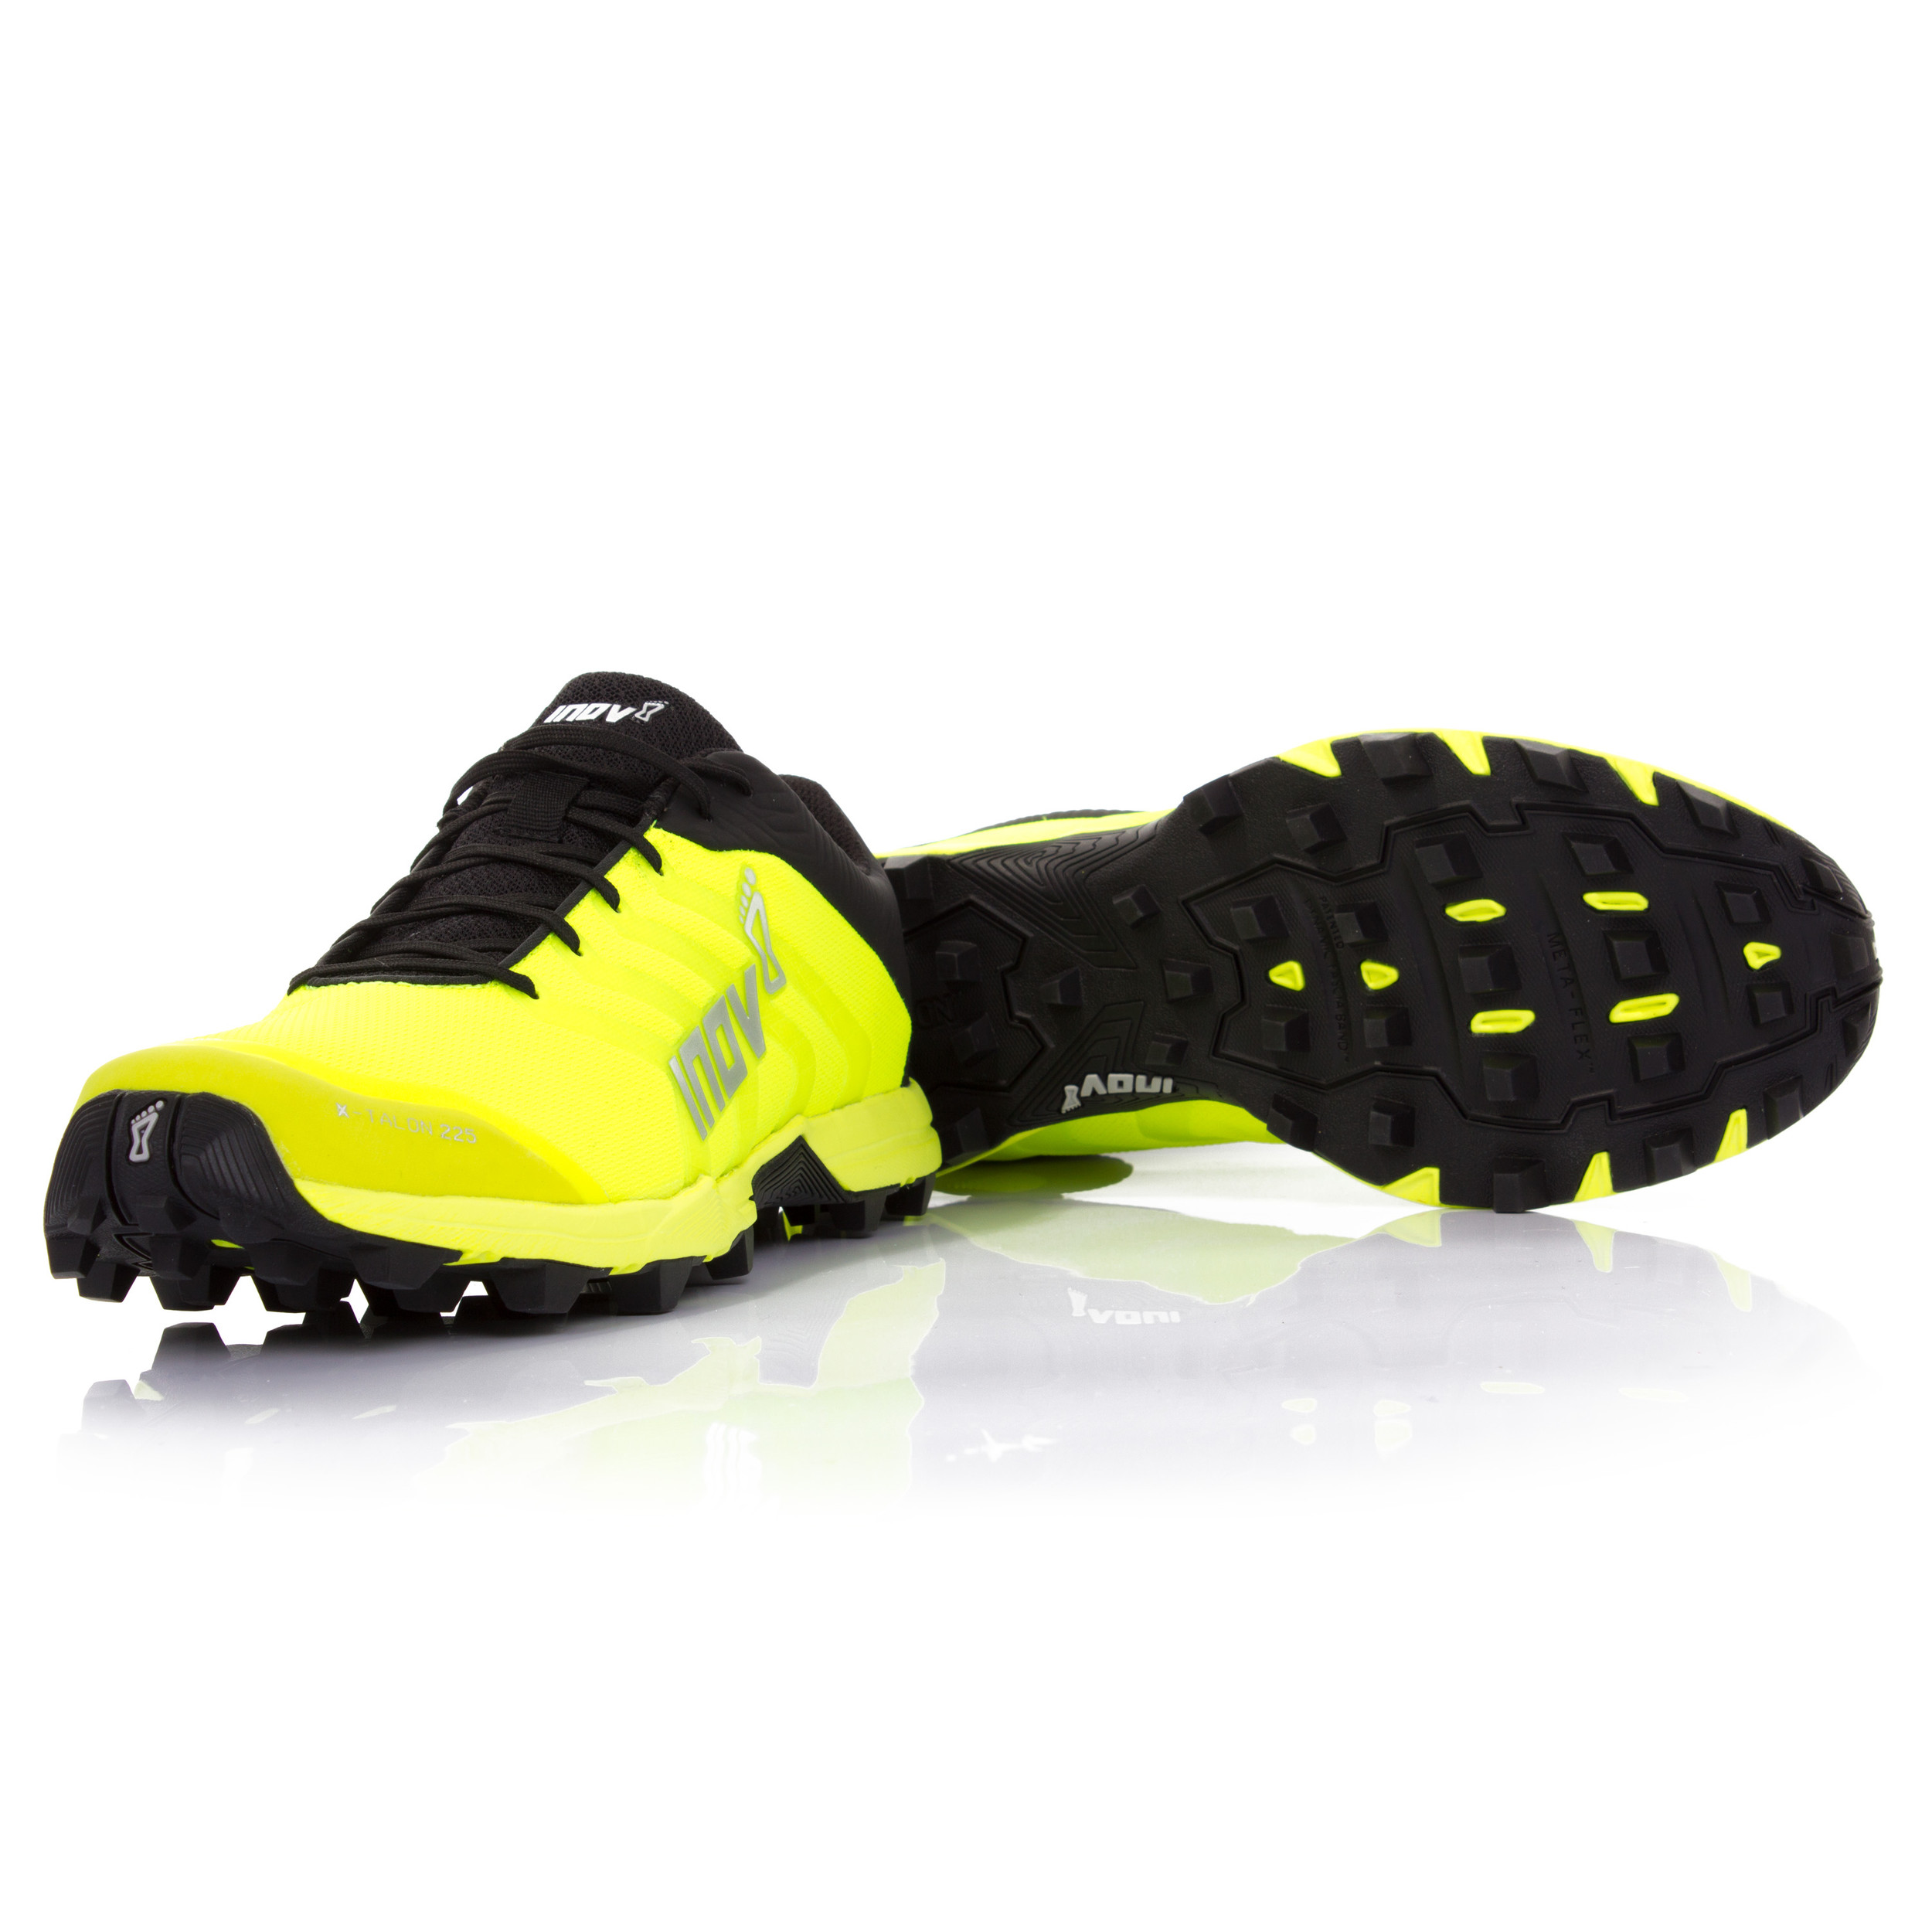 14a3ba0cb7a Inov8 X-Talon 225 Unisex Yellow Black Water Resistant Sports Shoes Trainers